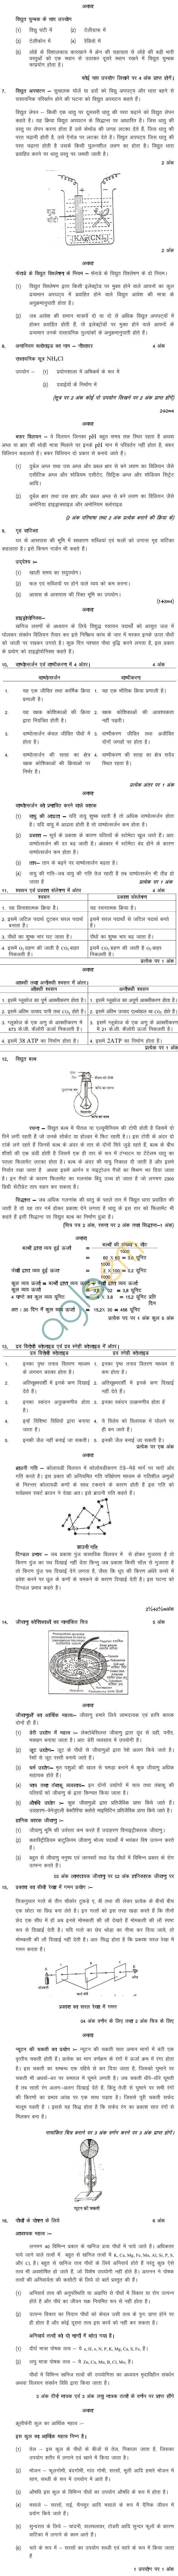 MP Board Class XII Elements of Science Model Questions & Answers - Set 1